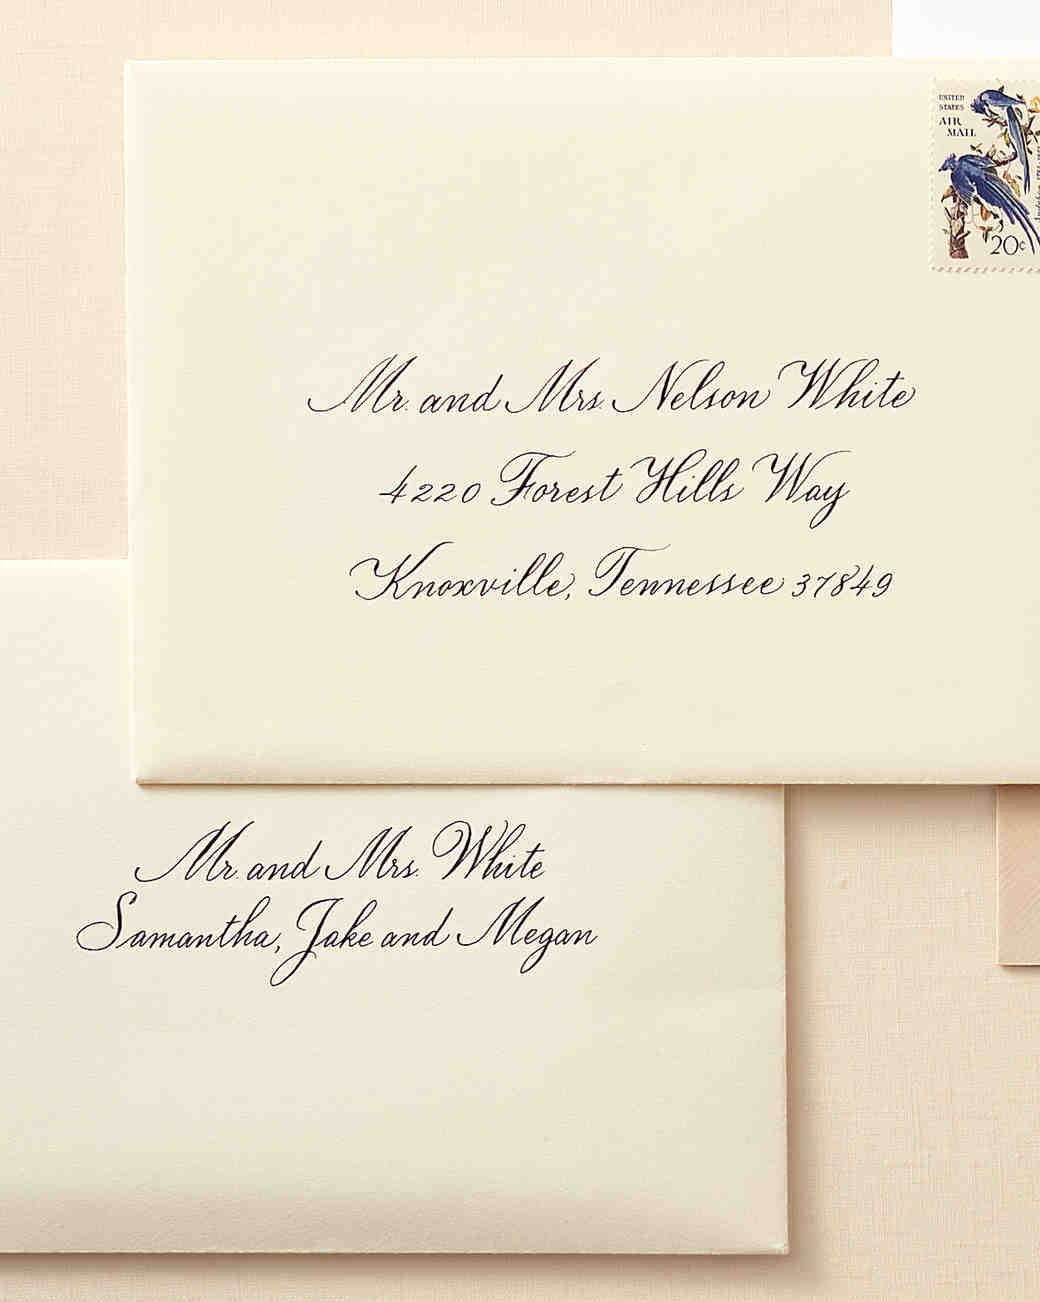 How to address guests on wedding invitation envelopes for Wedding invitations writing names